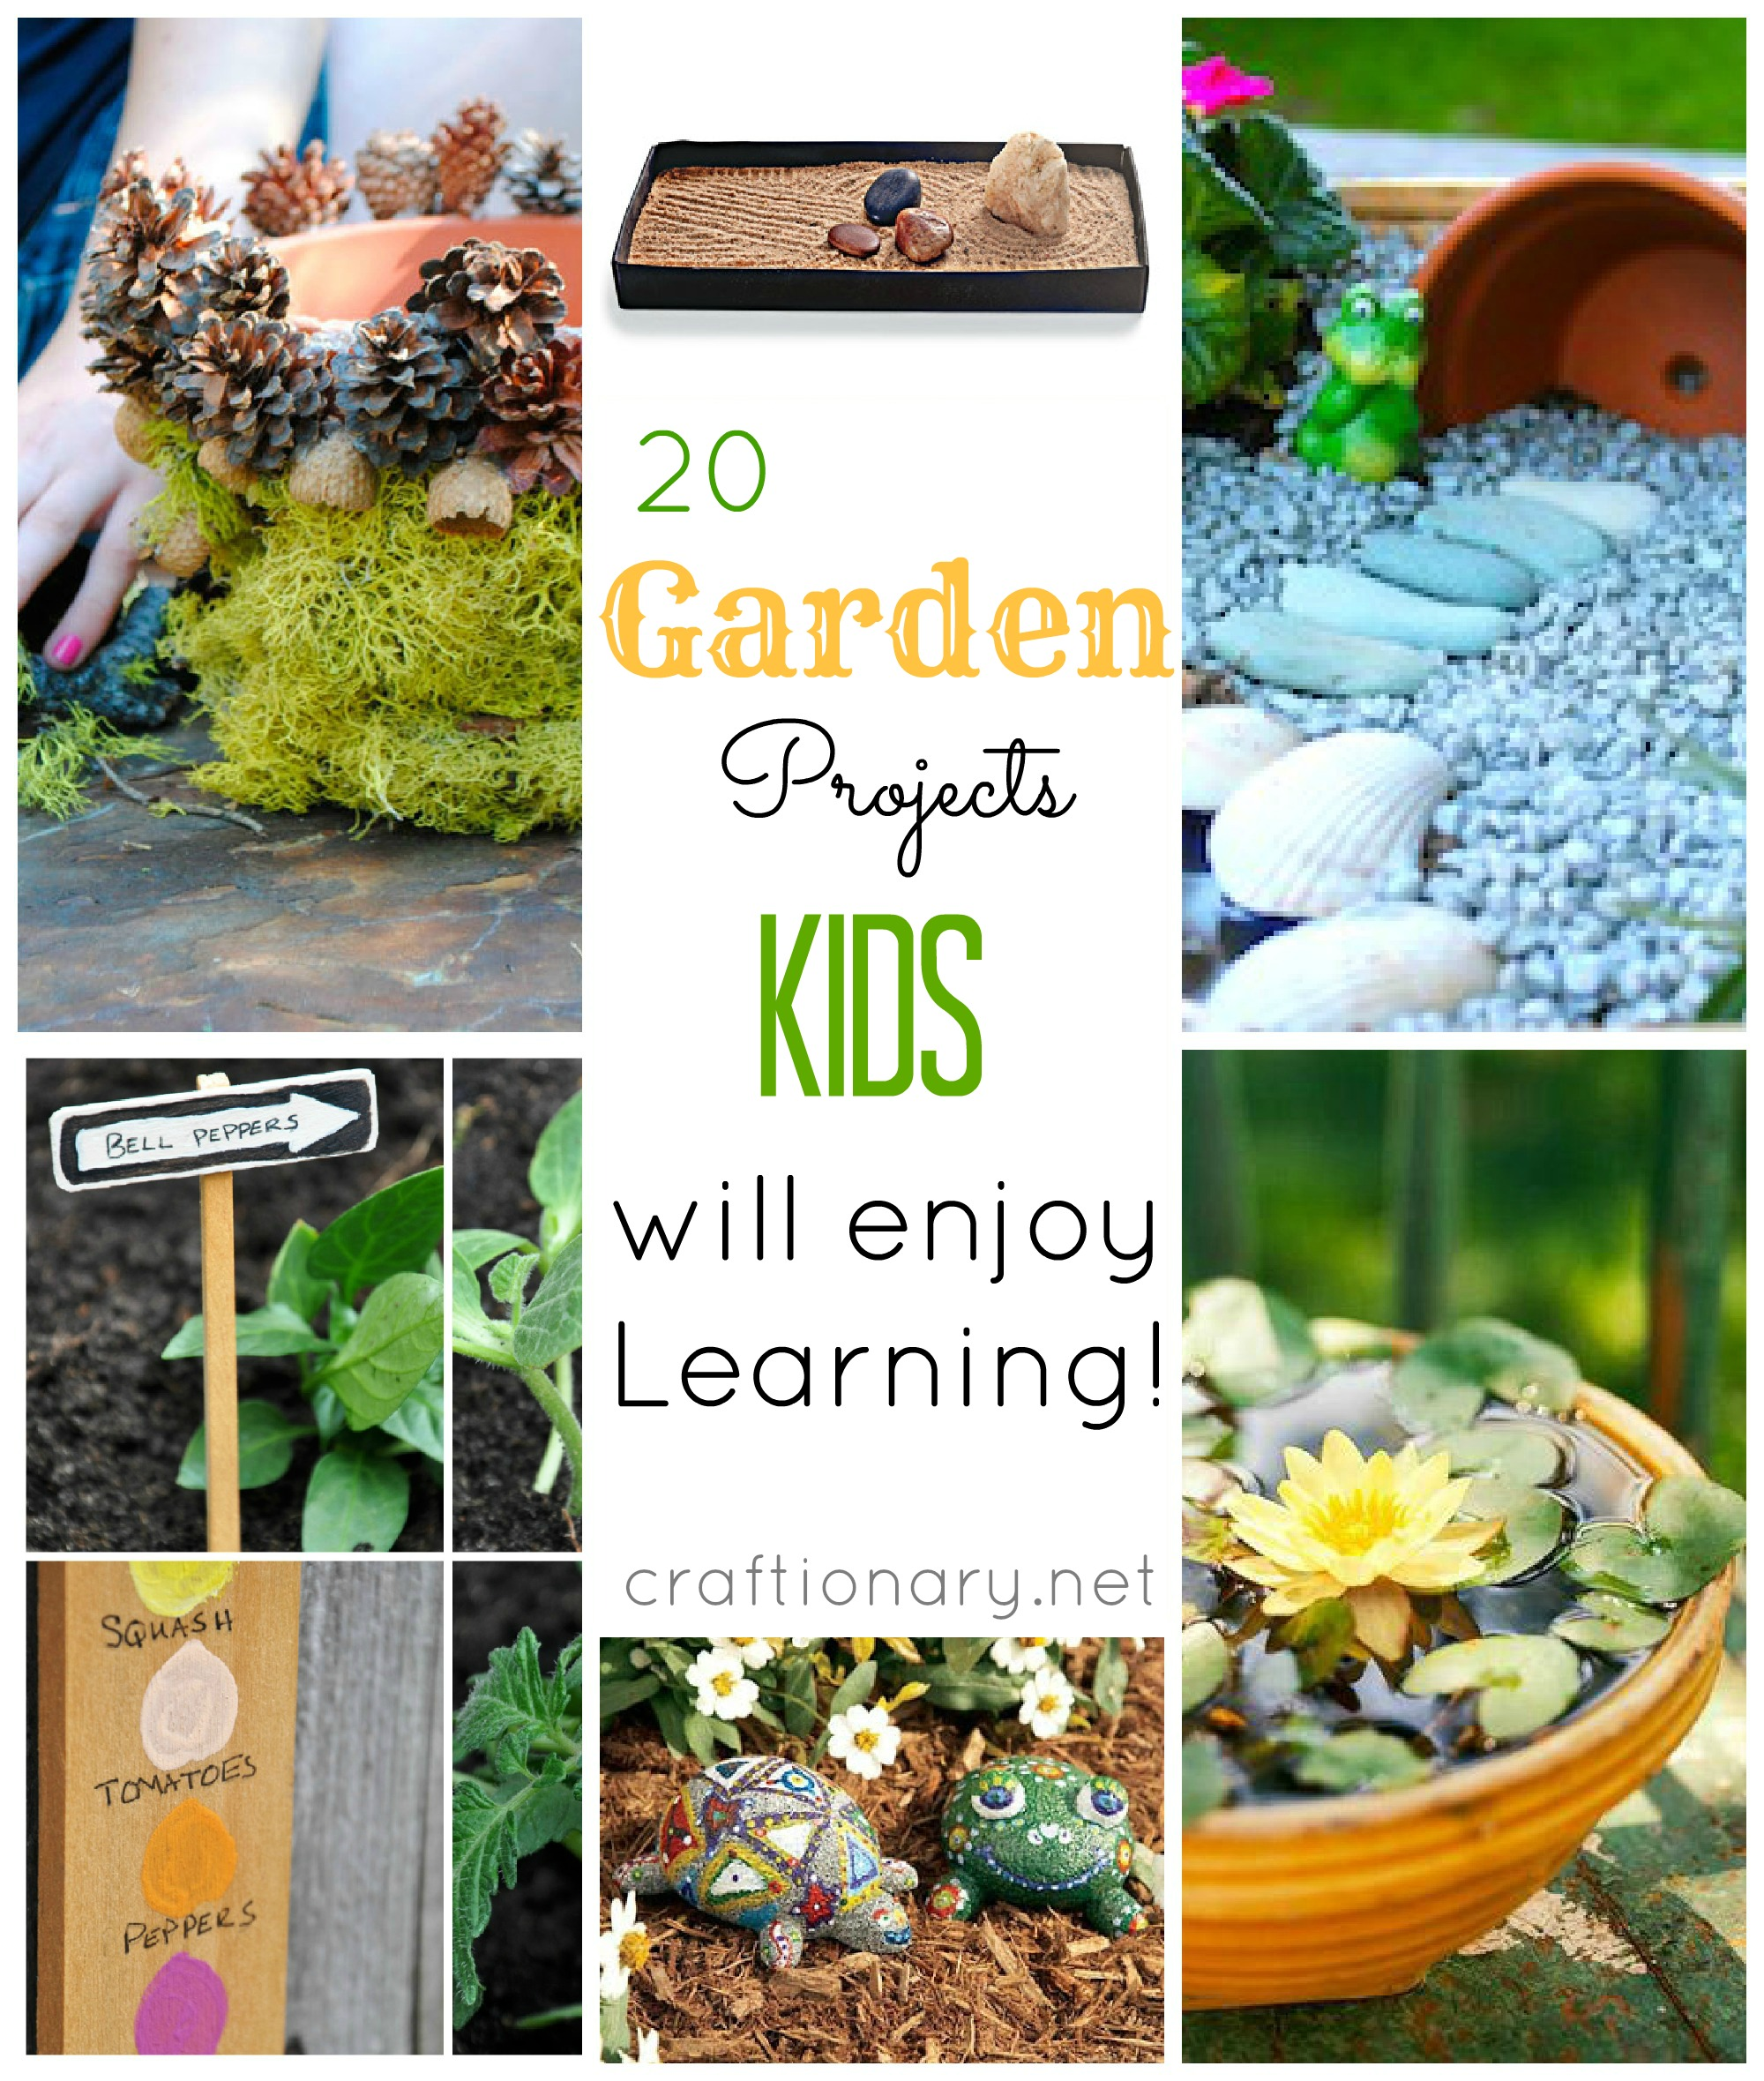 gardening with kids activities projects and ideas - Garden Art Ideas For Kids